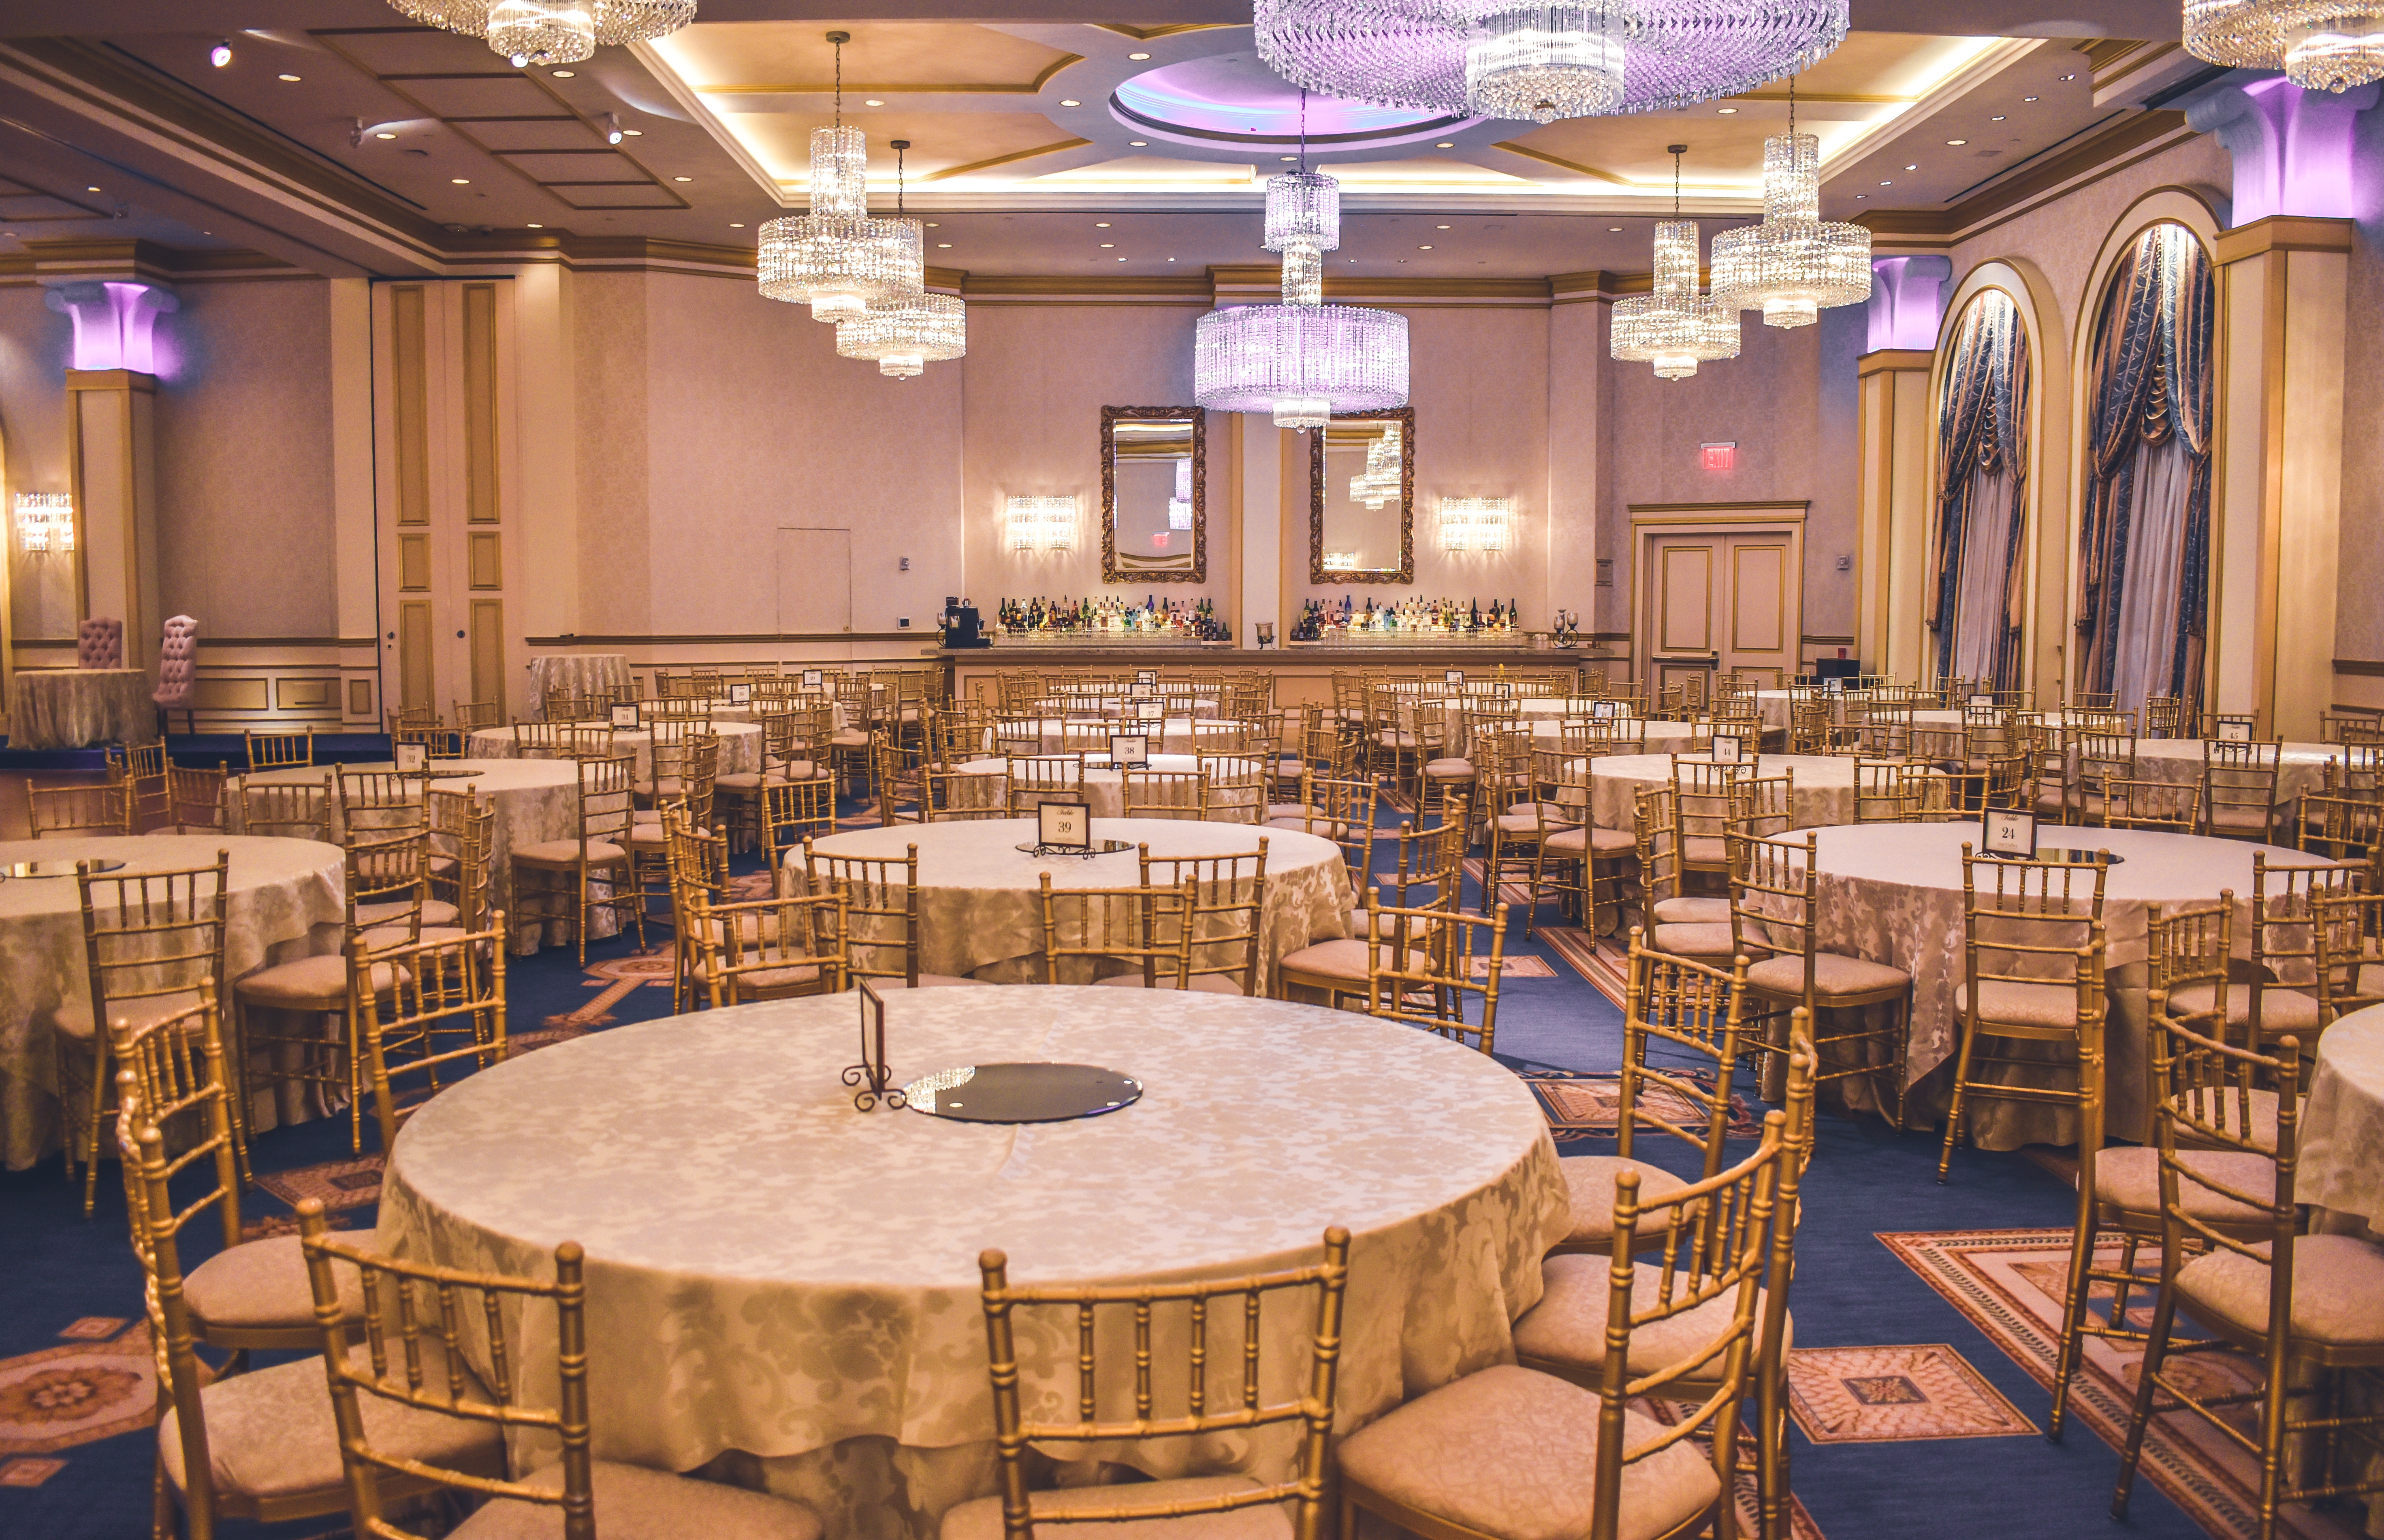 Chiavary Chairs and Round Tables